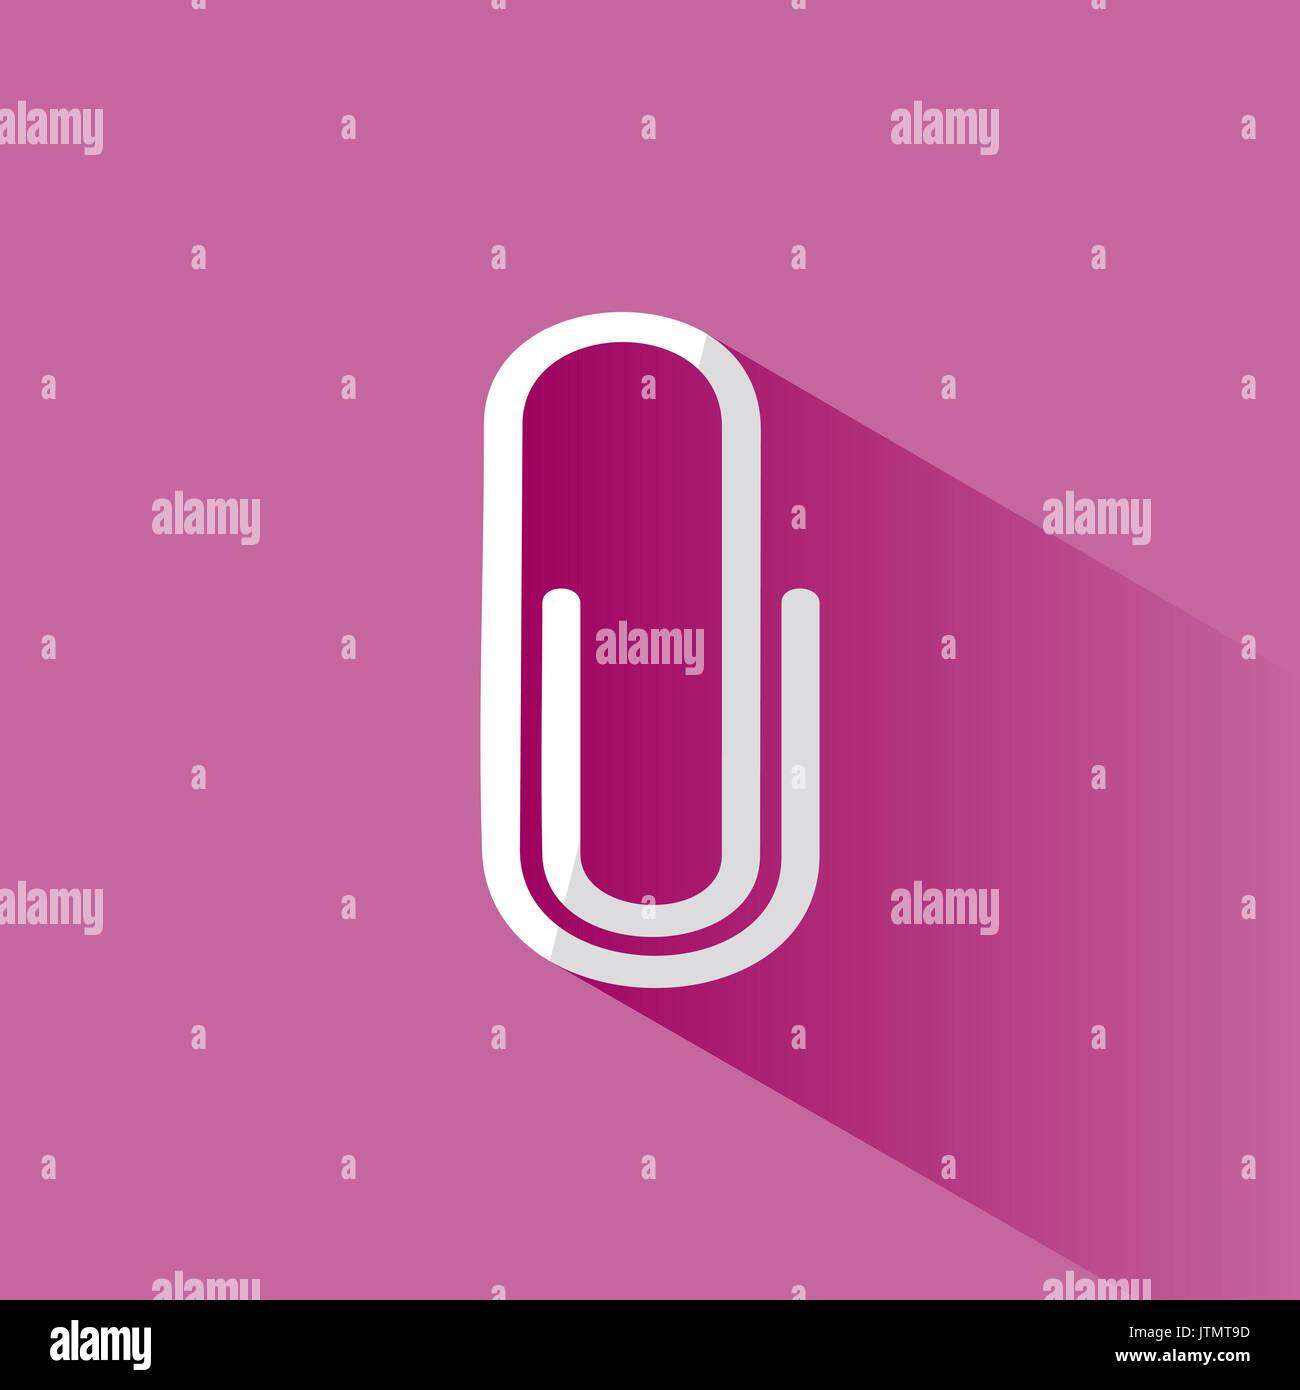 Clip icon with shade on pink background - Stock Vector